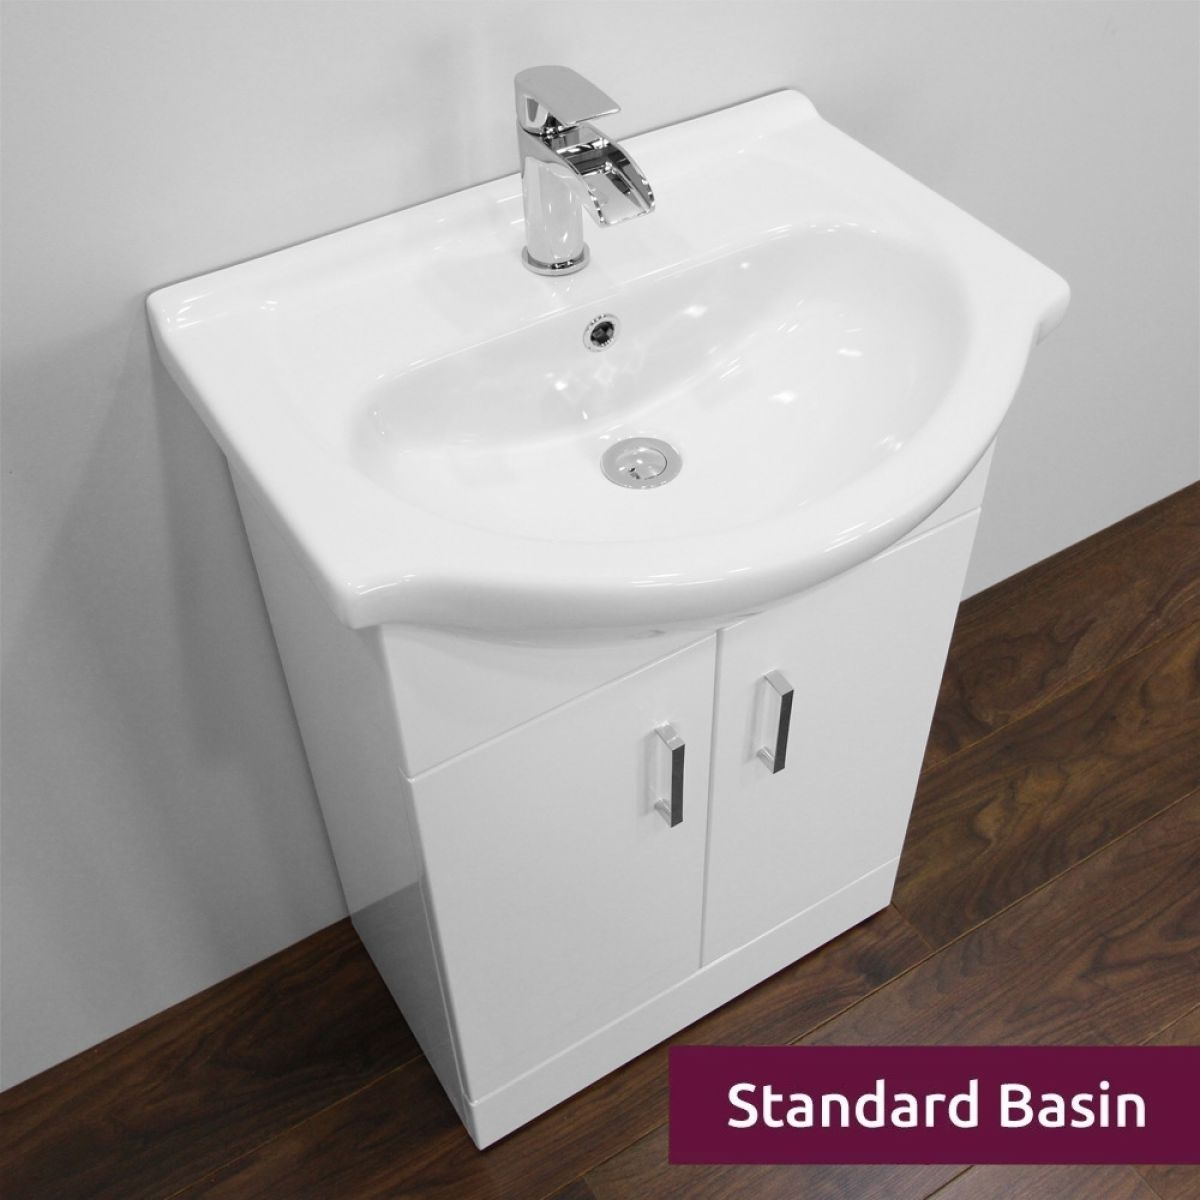 Premier High Gloss White Vanity Unit 550mm with Standard Basin